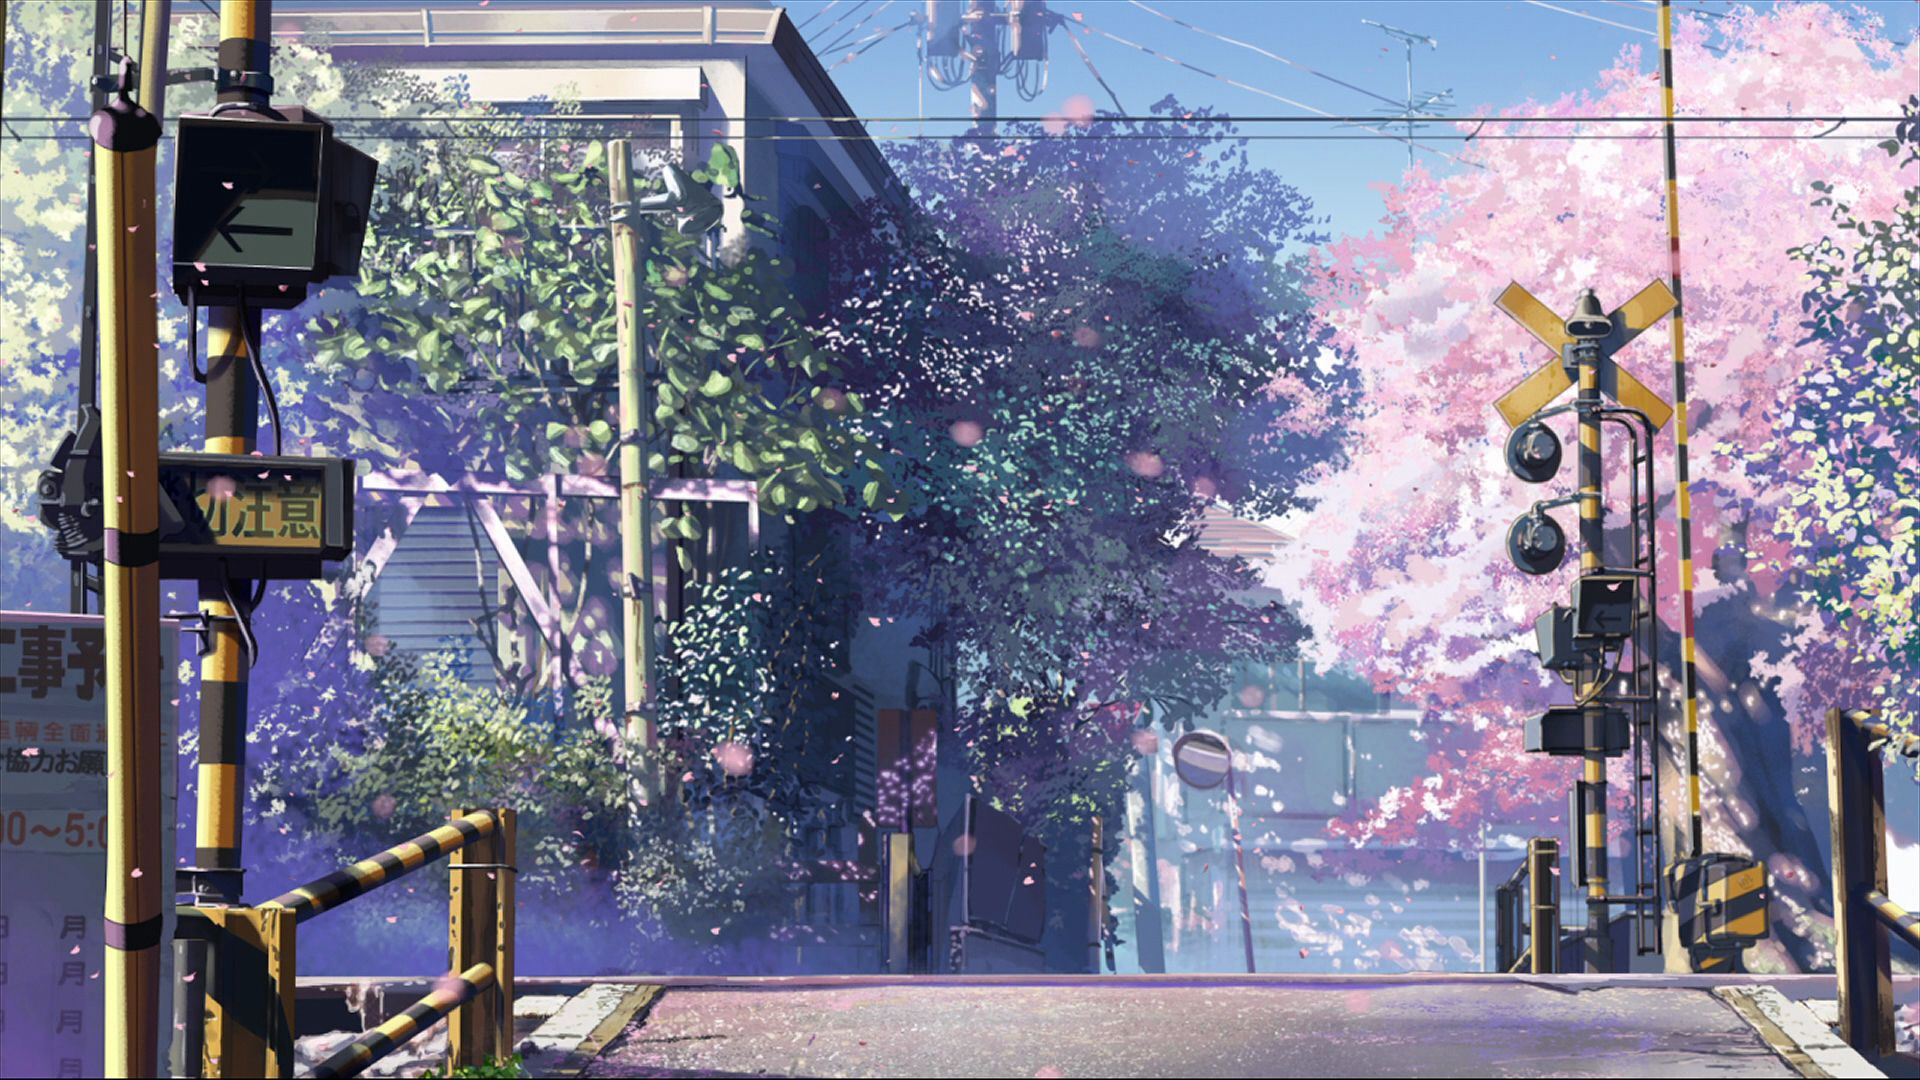 Check Out This Amazing Anime Art Threadless Blog Anime Scenery Wallpaper Anime Background Anime Wallpaper Desktop wallpaper anime art